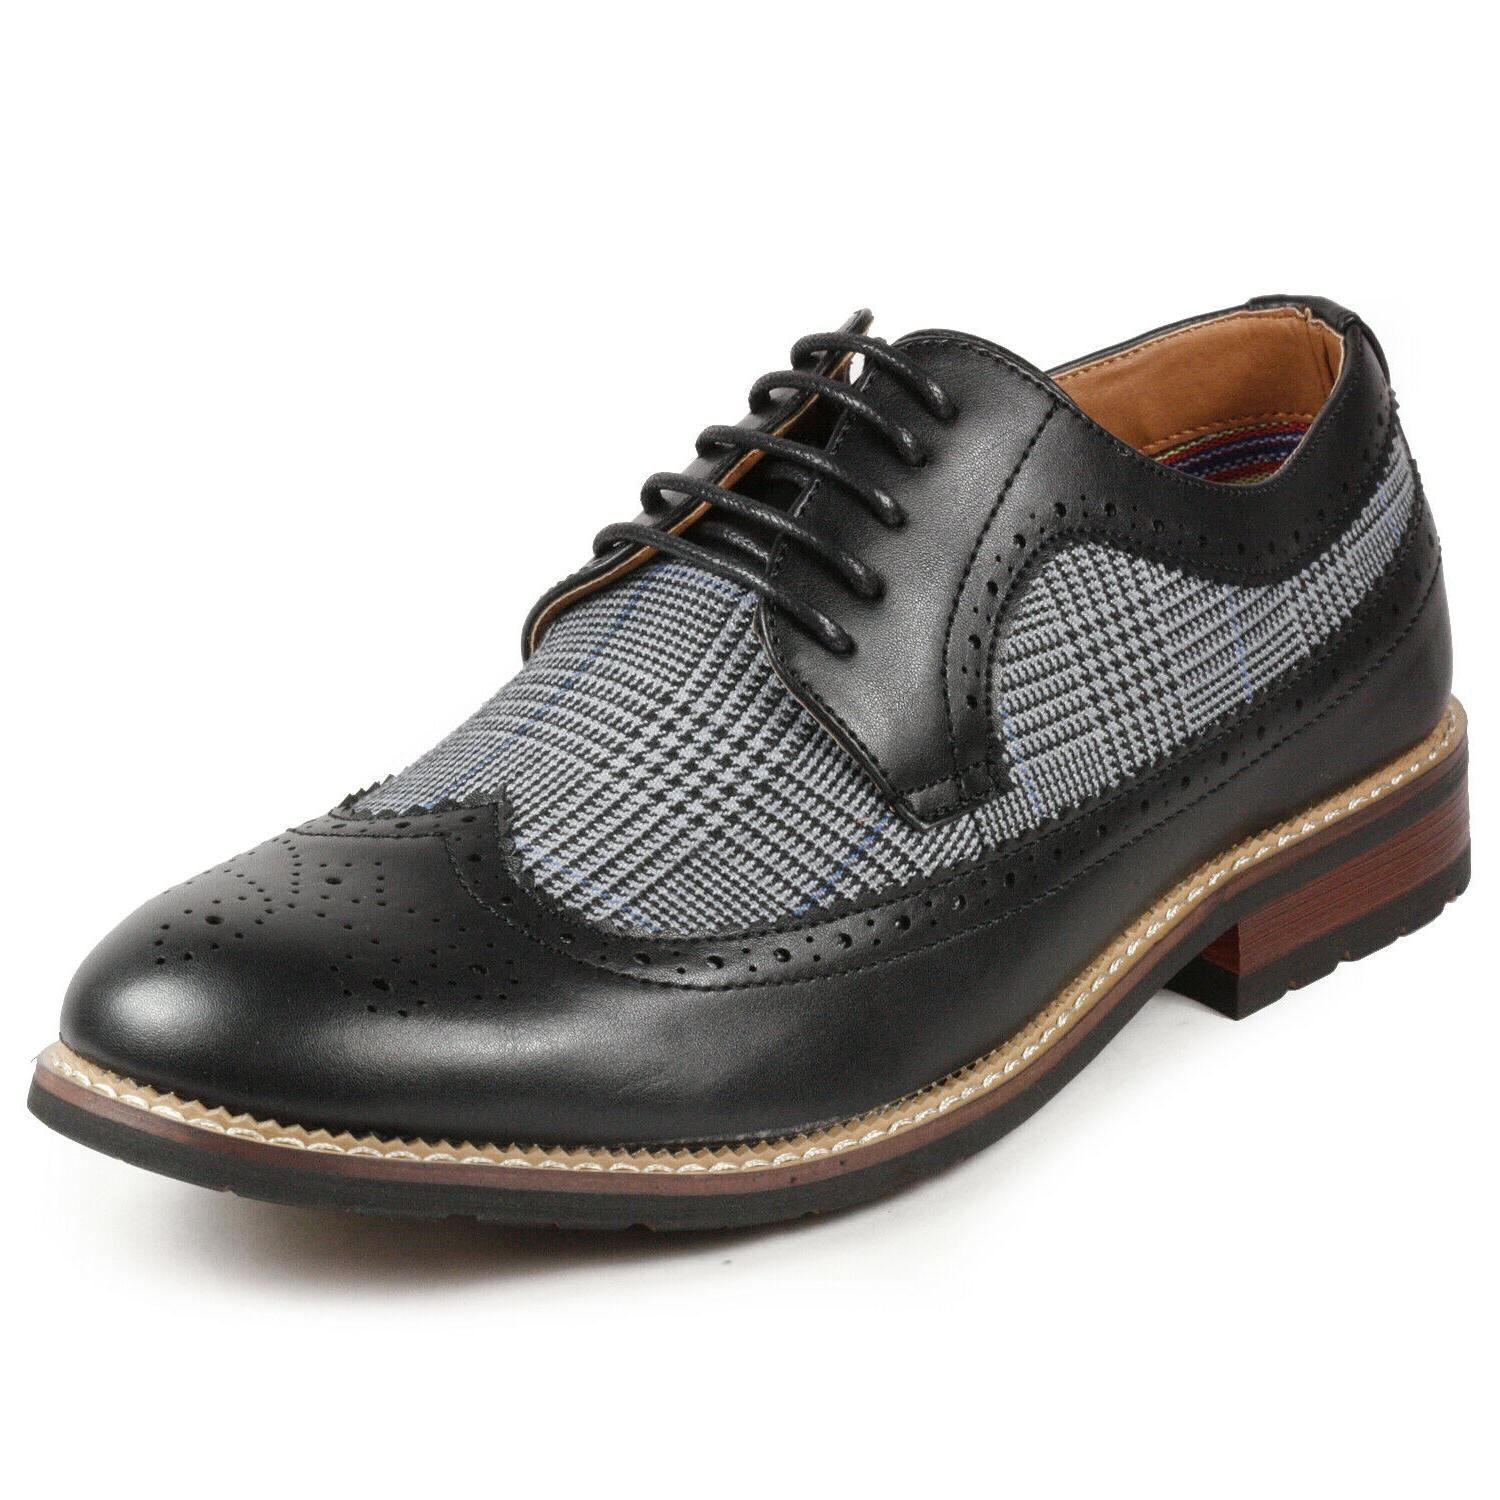 Black Tweed Men's Tip Lace Up Oxford Dress